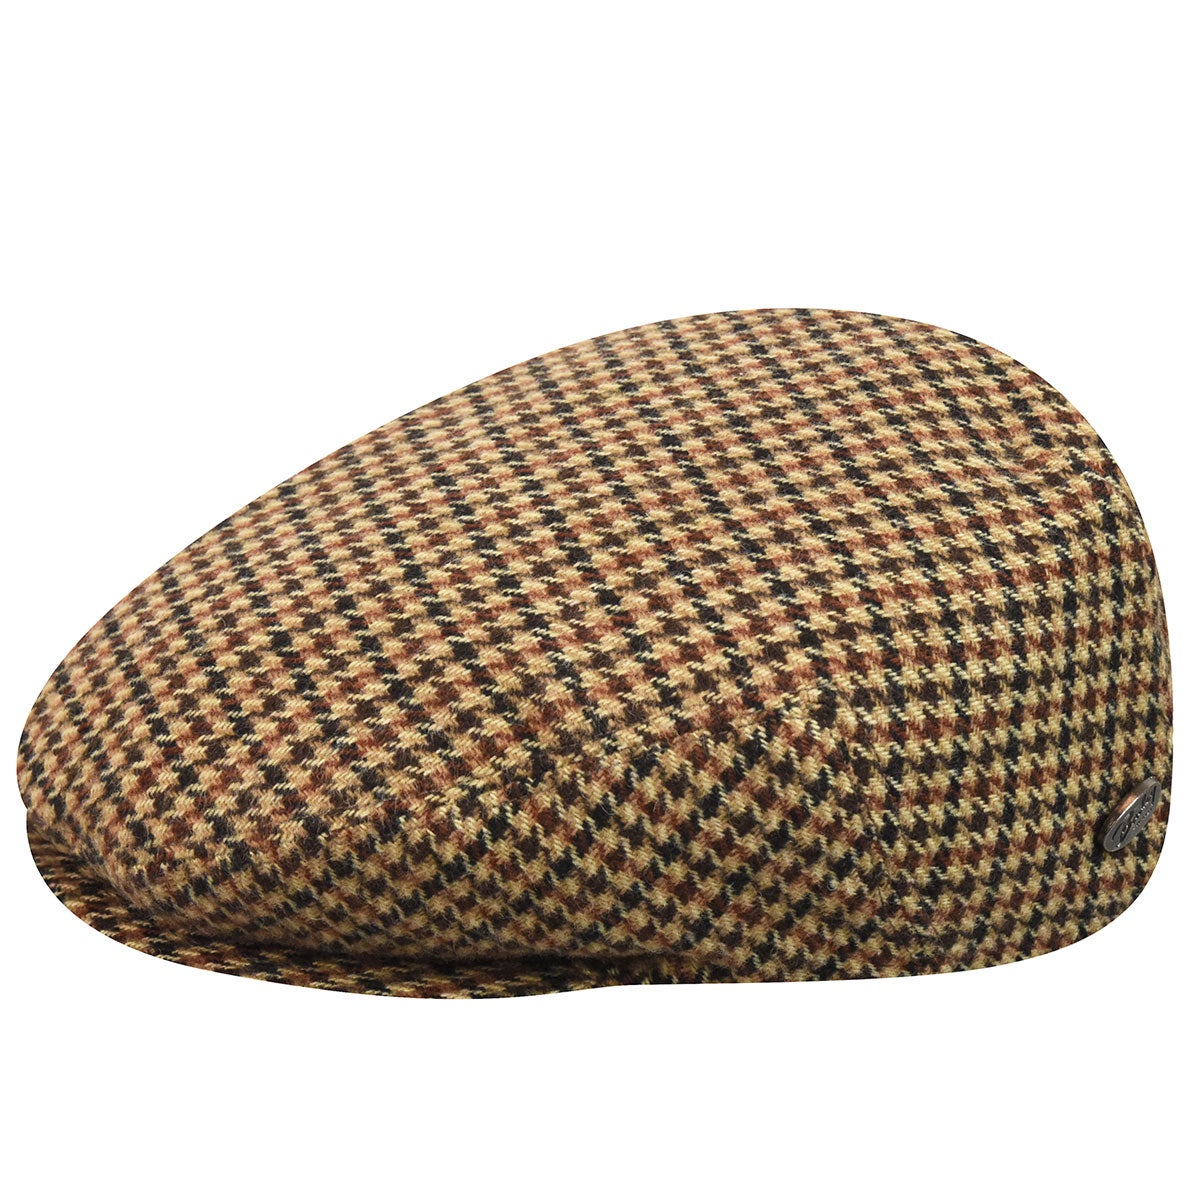 1930s Style Mens Hats and Caps Lord Plaid Ivy Cap $85.00 AT vintagedancer.com